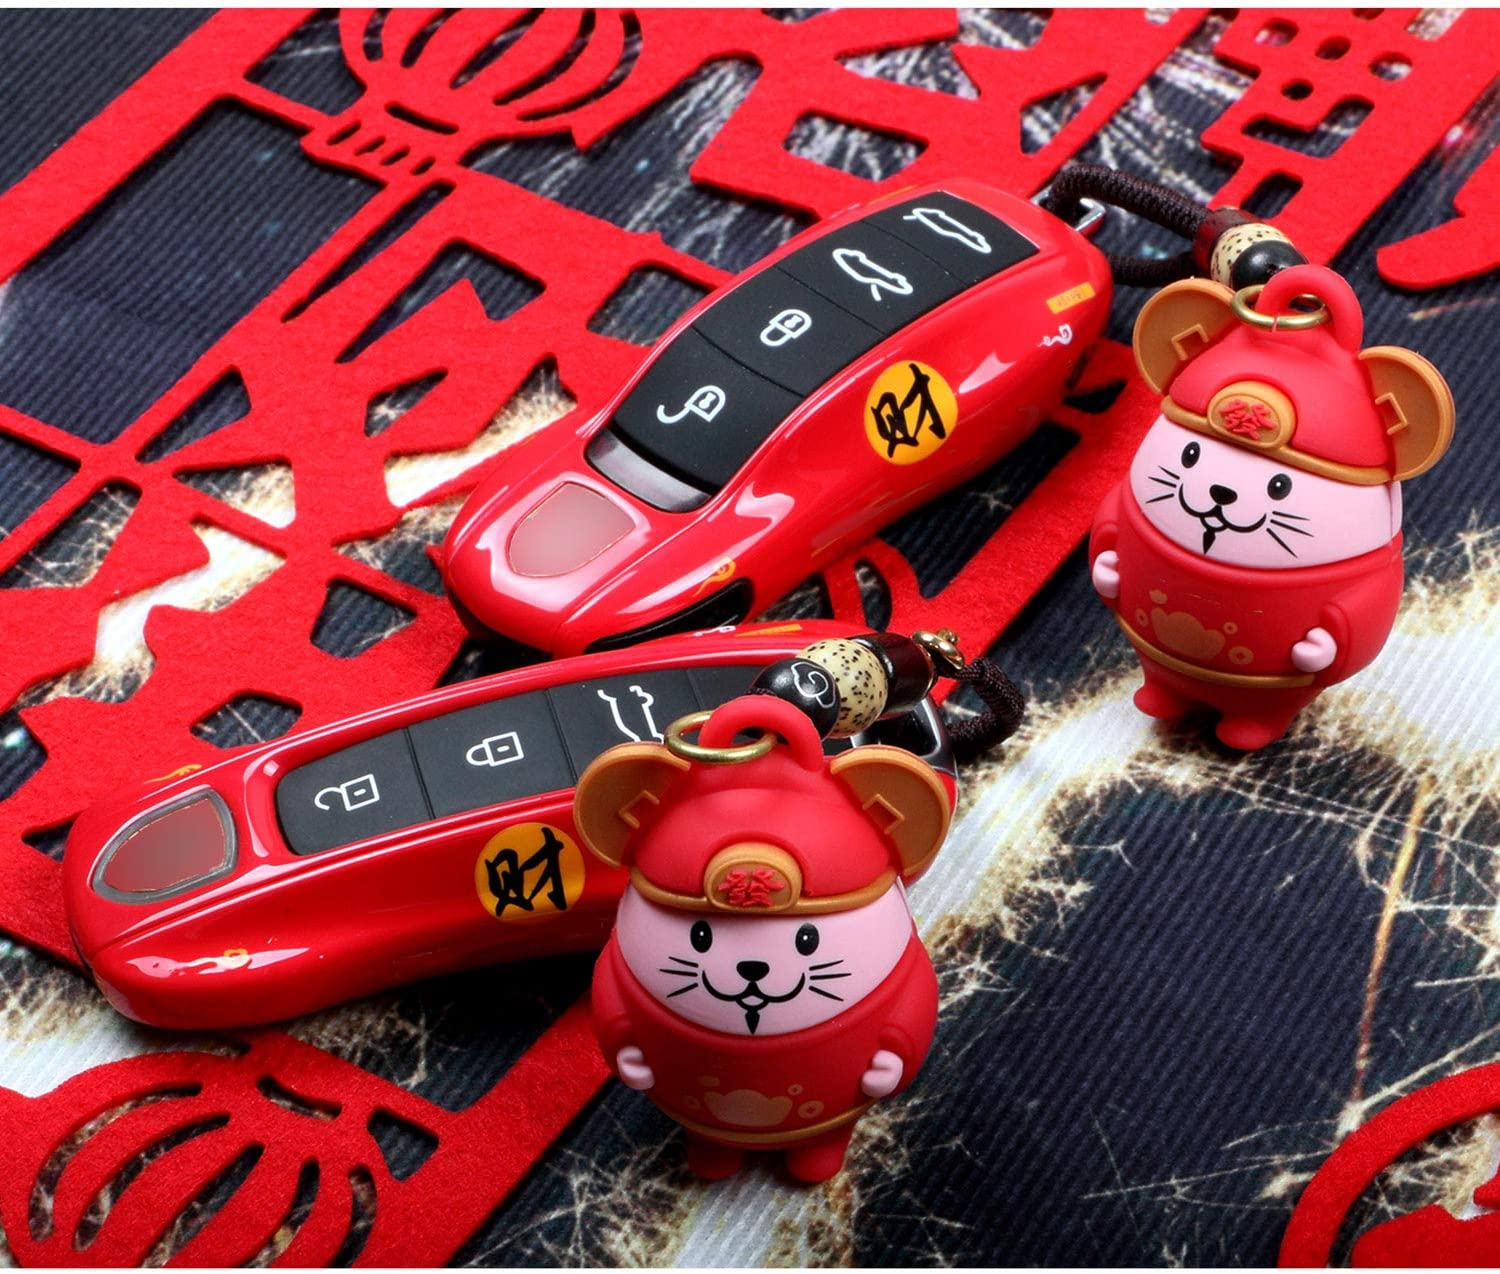 Atype Kwaks Car Key Case Compatible for Porsche Panamera 971 Cayenne 9YA Macan 911 718 Boxster Red Key Holder with 2020 New Year Rat Key Chain